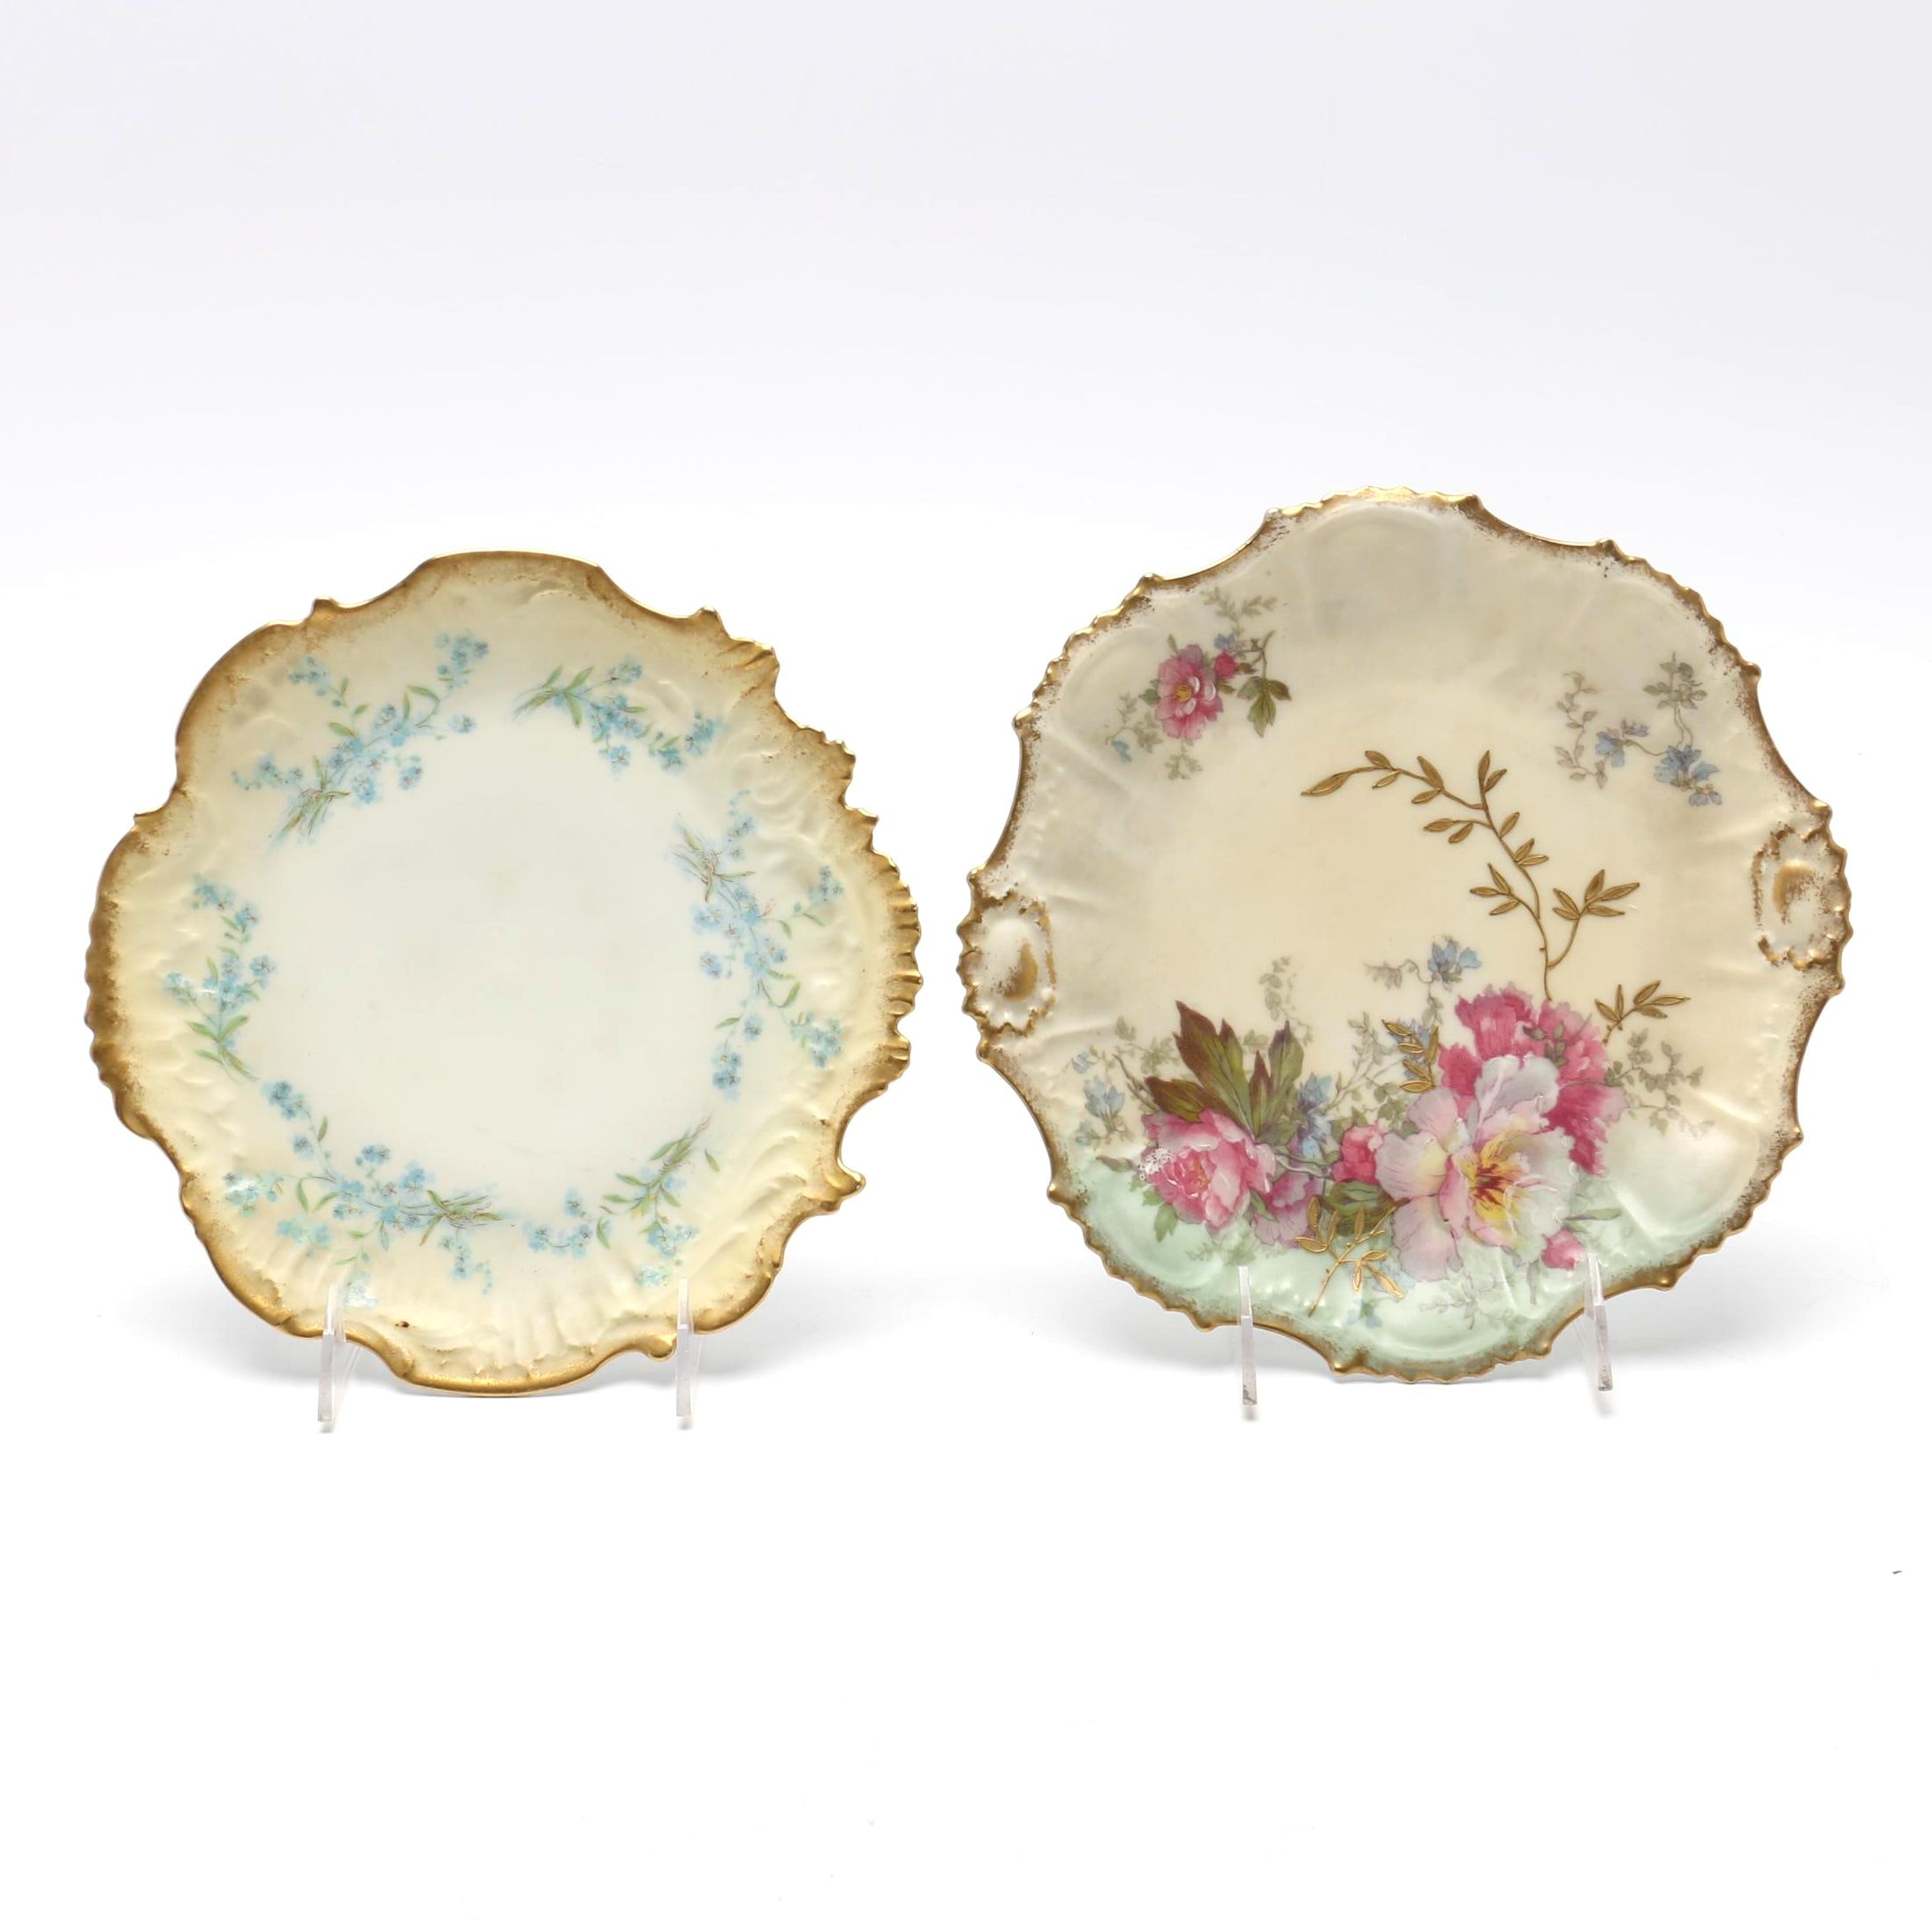 Pair of Limoges Plates